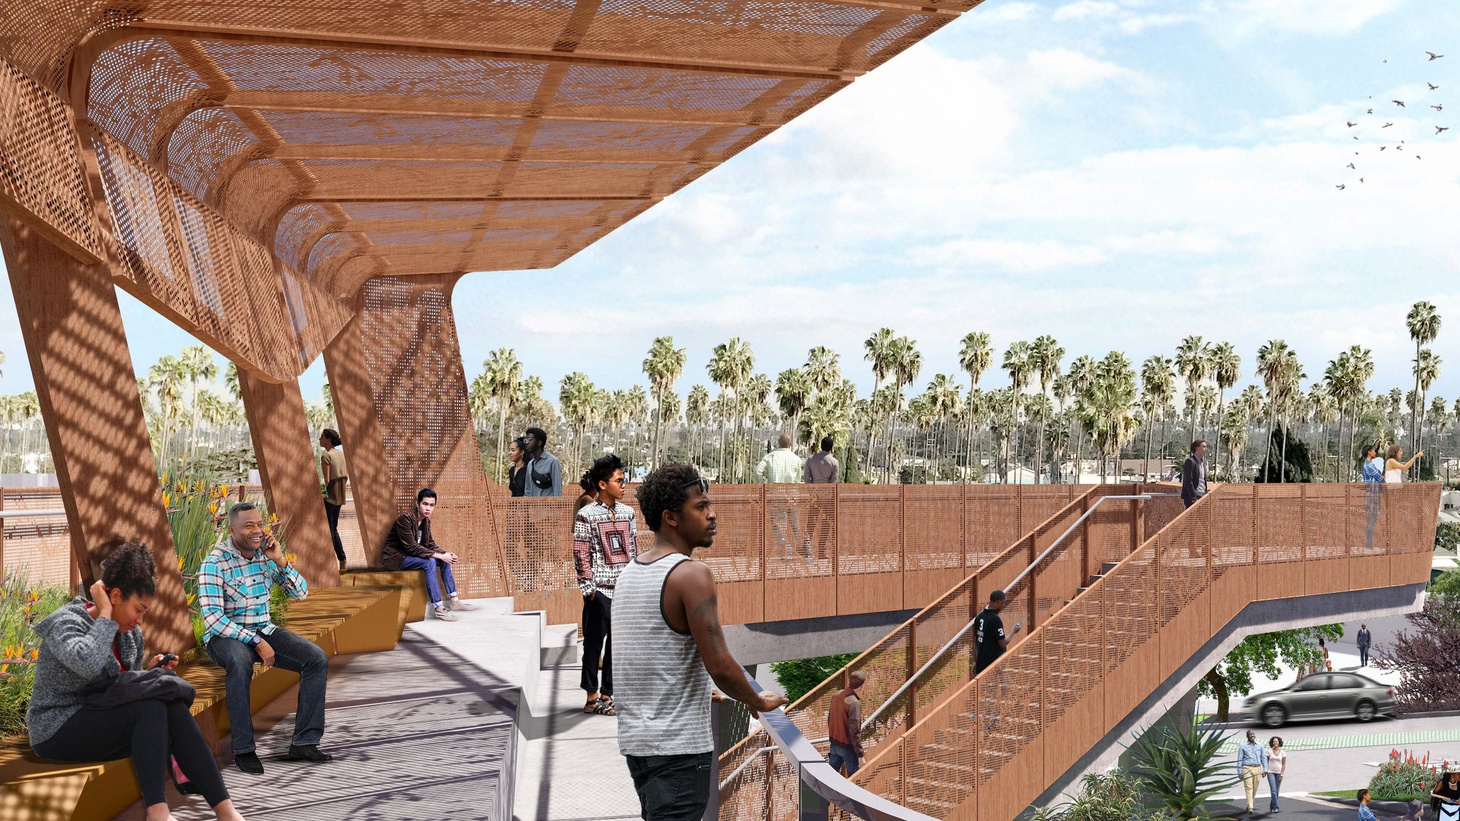 Destination Crenshaw was one of several South LA projects Nipsey Hussle was involved with. Views to the east from the upper level of the viewing deck at Sankofa Park, located where Crenshaw Blvd. and Leimert Blvd. split.